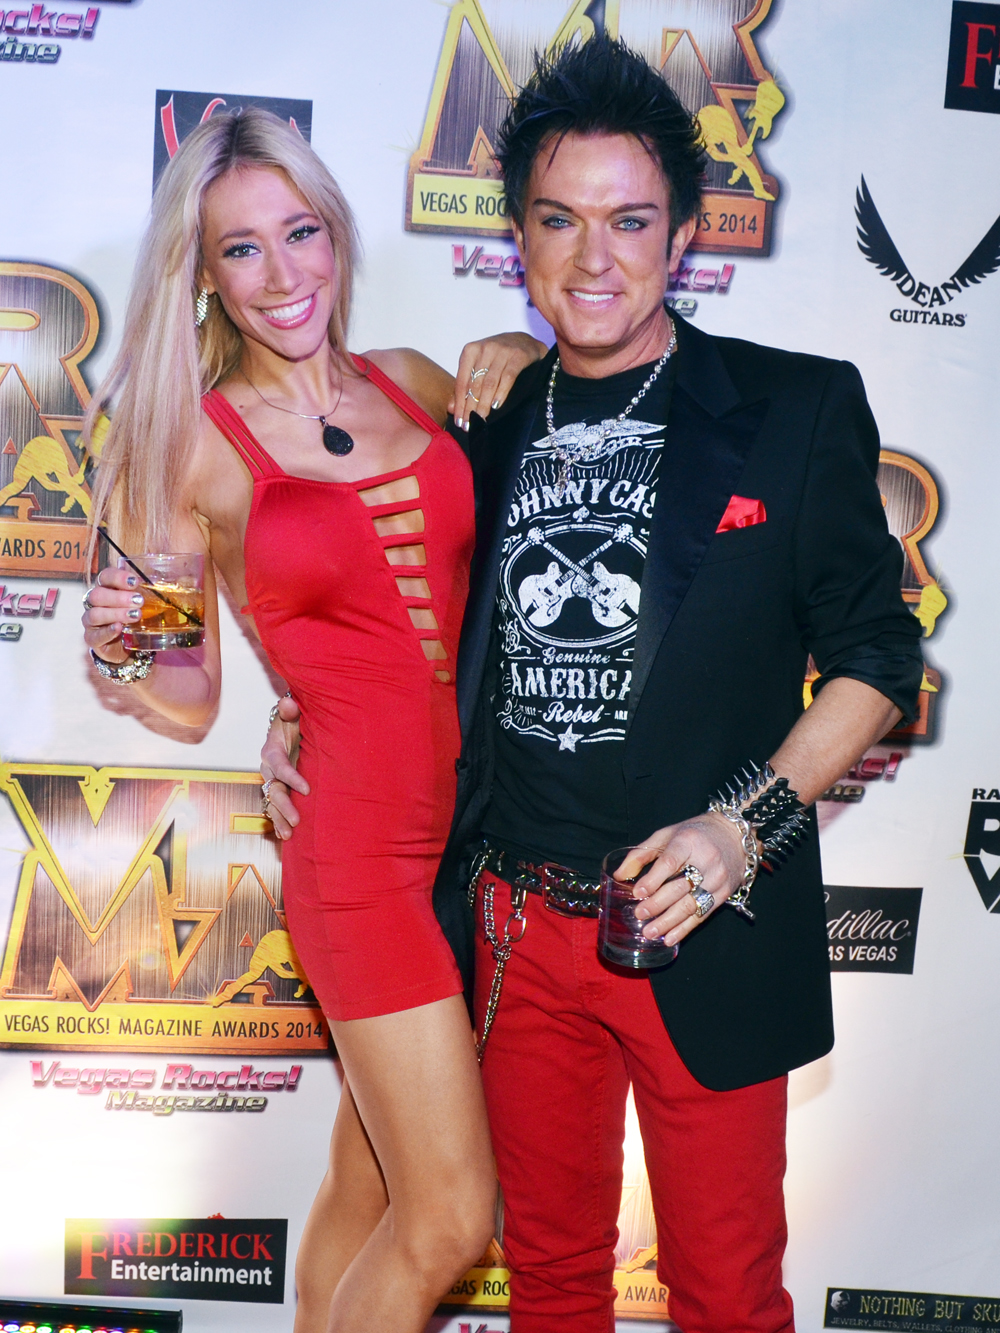 Lydia Ansel Chris Phillips of Zowie Bowie - Vegas Rocks Magazine Music Awards 2014 photo credit Stephen Thorburn 63713